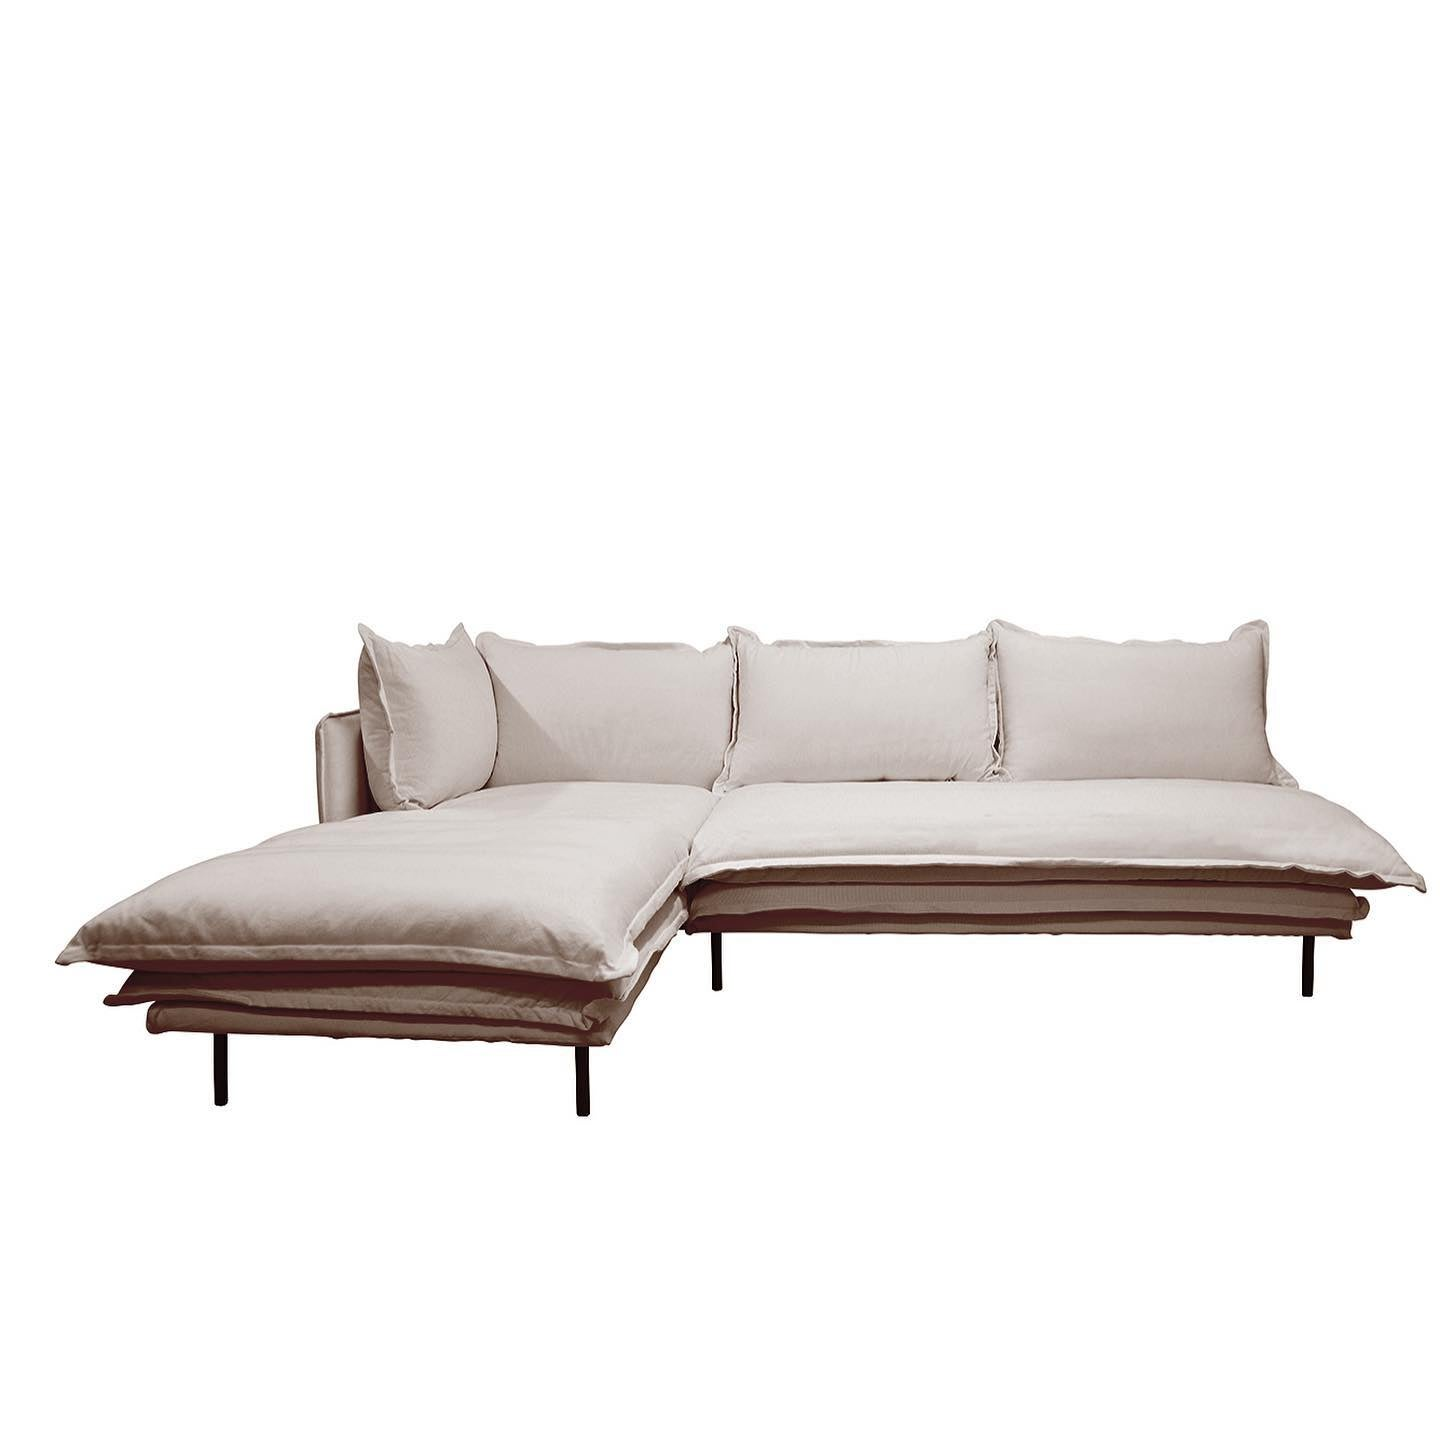 Our LOUIS modulars are now back in stock with a new NATURAL colour in linen added to the collection. Casual, relaxed Japanese style, they are generous in depth and most comfortable. Allergy free cushion inners and a solid pine frame.  The covers are fully removable for dry-cleaning. Available in 5 colours - white, black, natural, grey and charcoal in either 100% cotton or 100% linen. Left and right hand returns available. All in stock now. . . #modularsofa #linensofa #modular #lounge